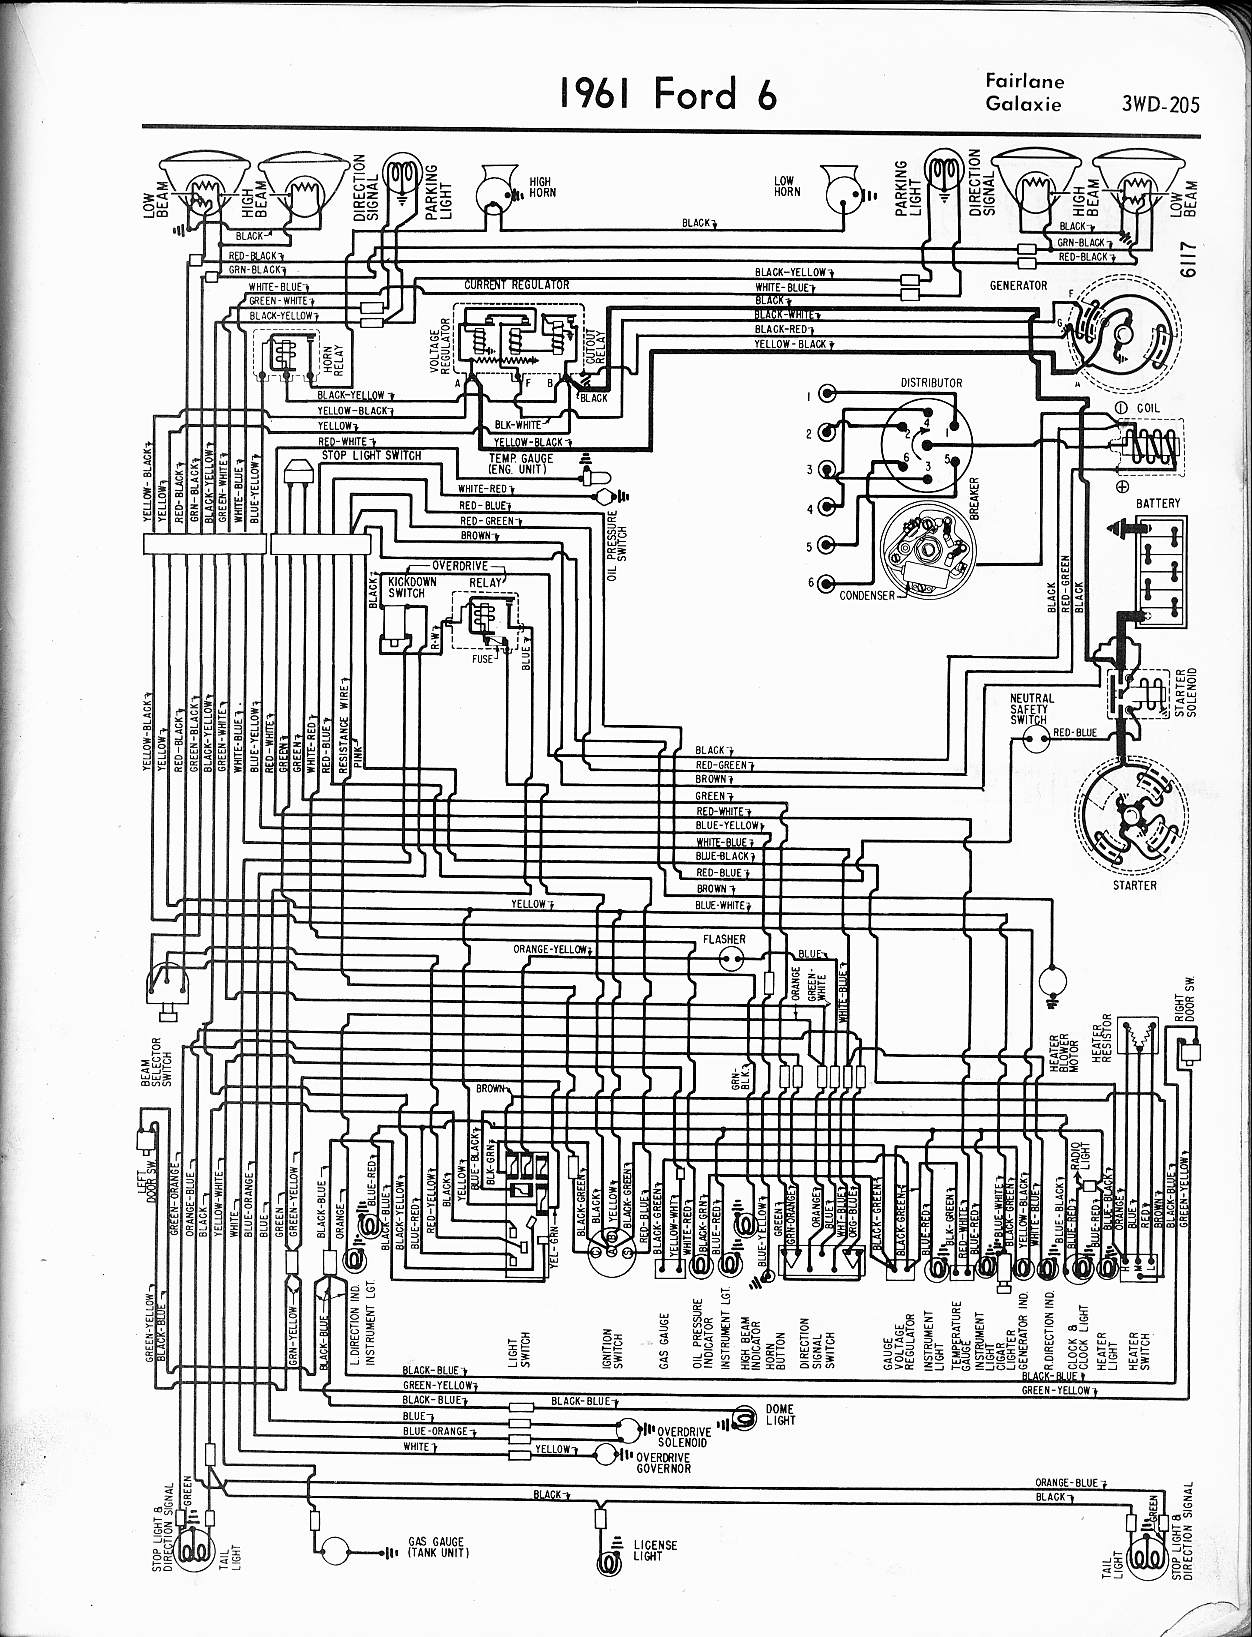 1961 ford wiring diagram wiring diagram database 1963 ford wiring diagram 1961 ford wiring diagram